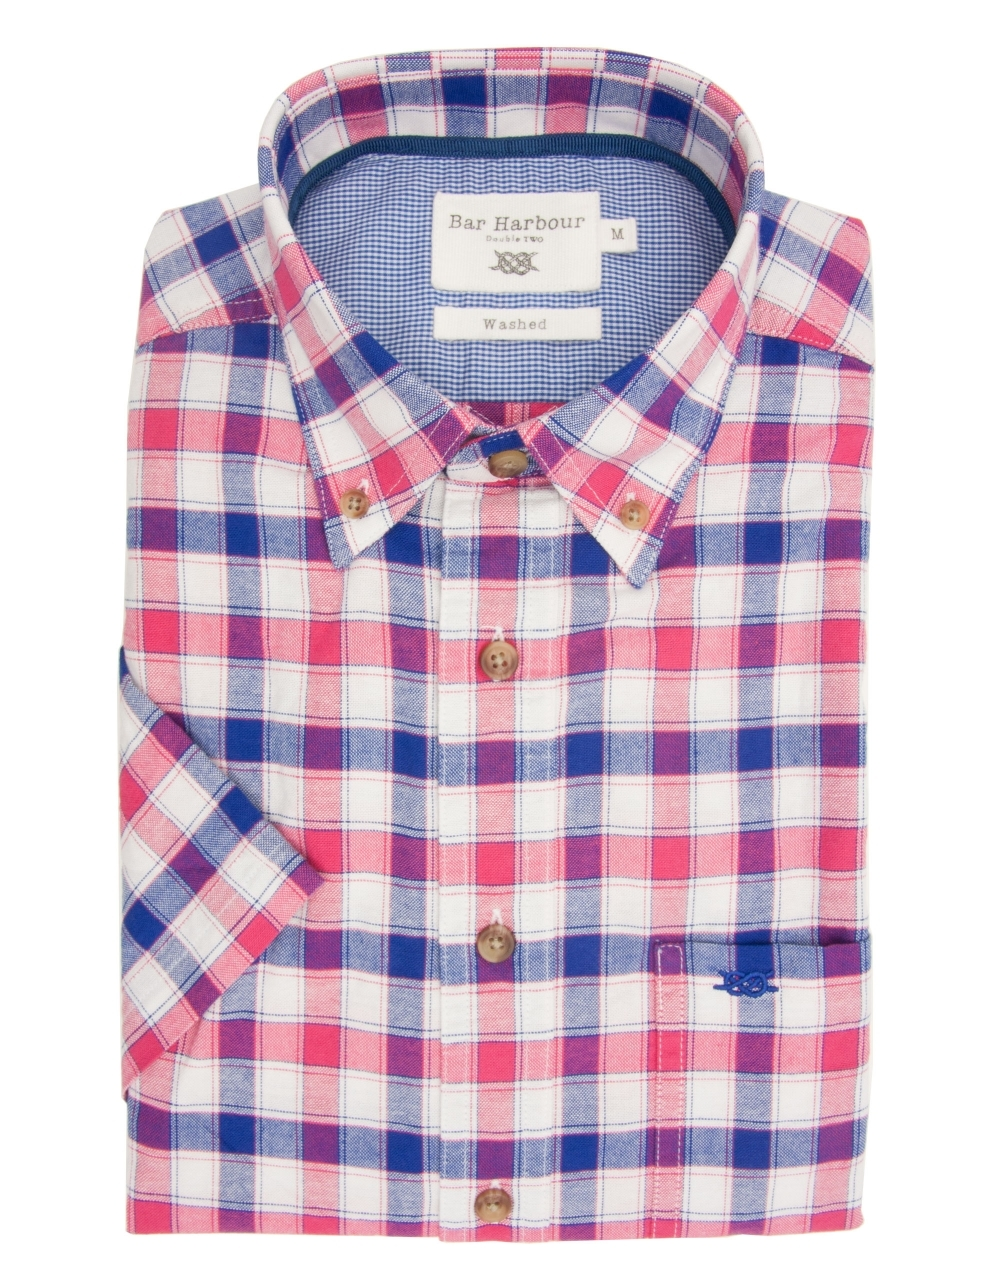 Red white and blue plaid % cotton ZAAL 3/4 sleeve button down shirt S. LL Bean Men's Red and White Plaid Shirt Medium Regular 0 GA99 % Cotton. Pre-Owned. $ Buy It Now. Free Shipping. Free Returns. Elizabeth and James Red Black White Plaid Shirt Silver Tone Studs Size 4.